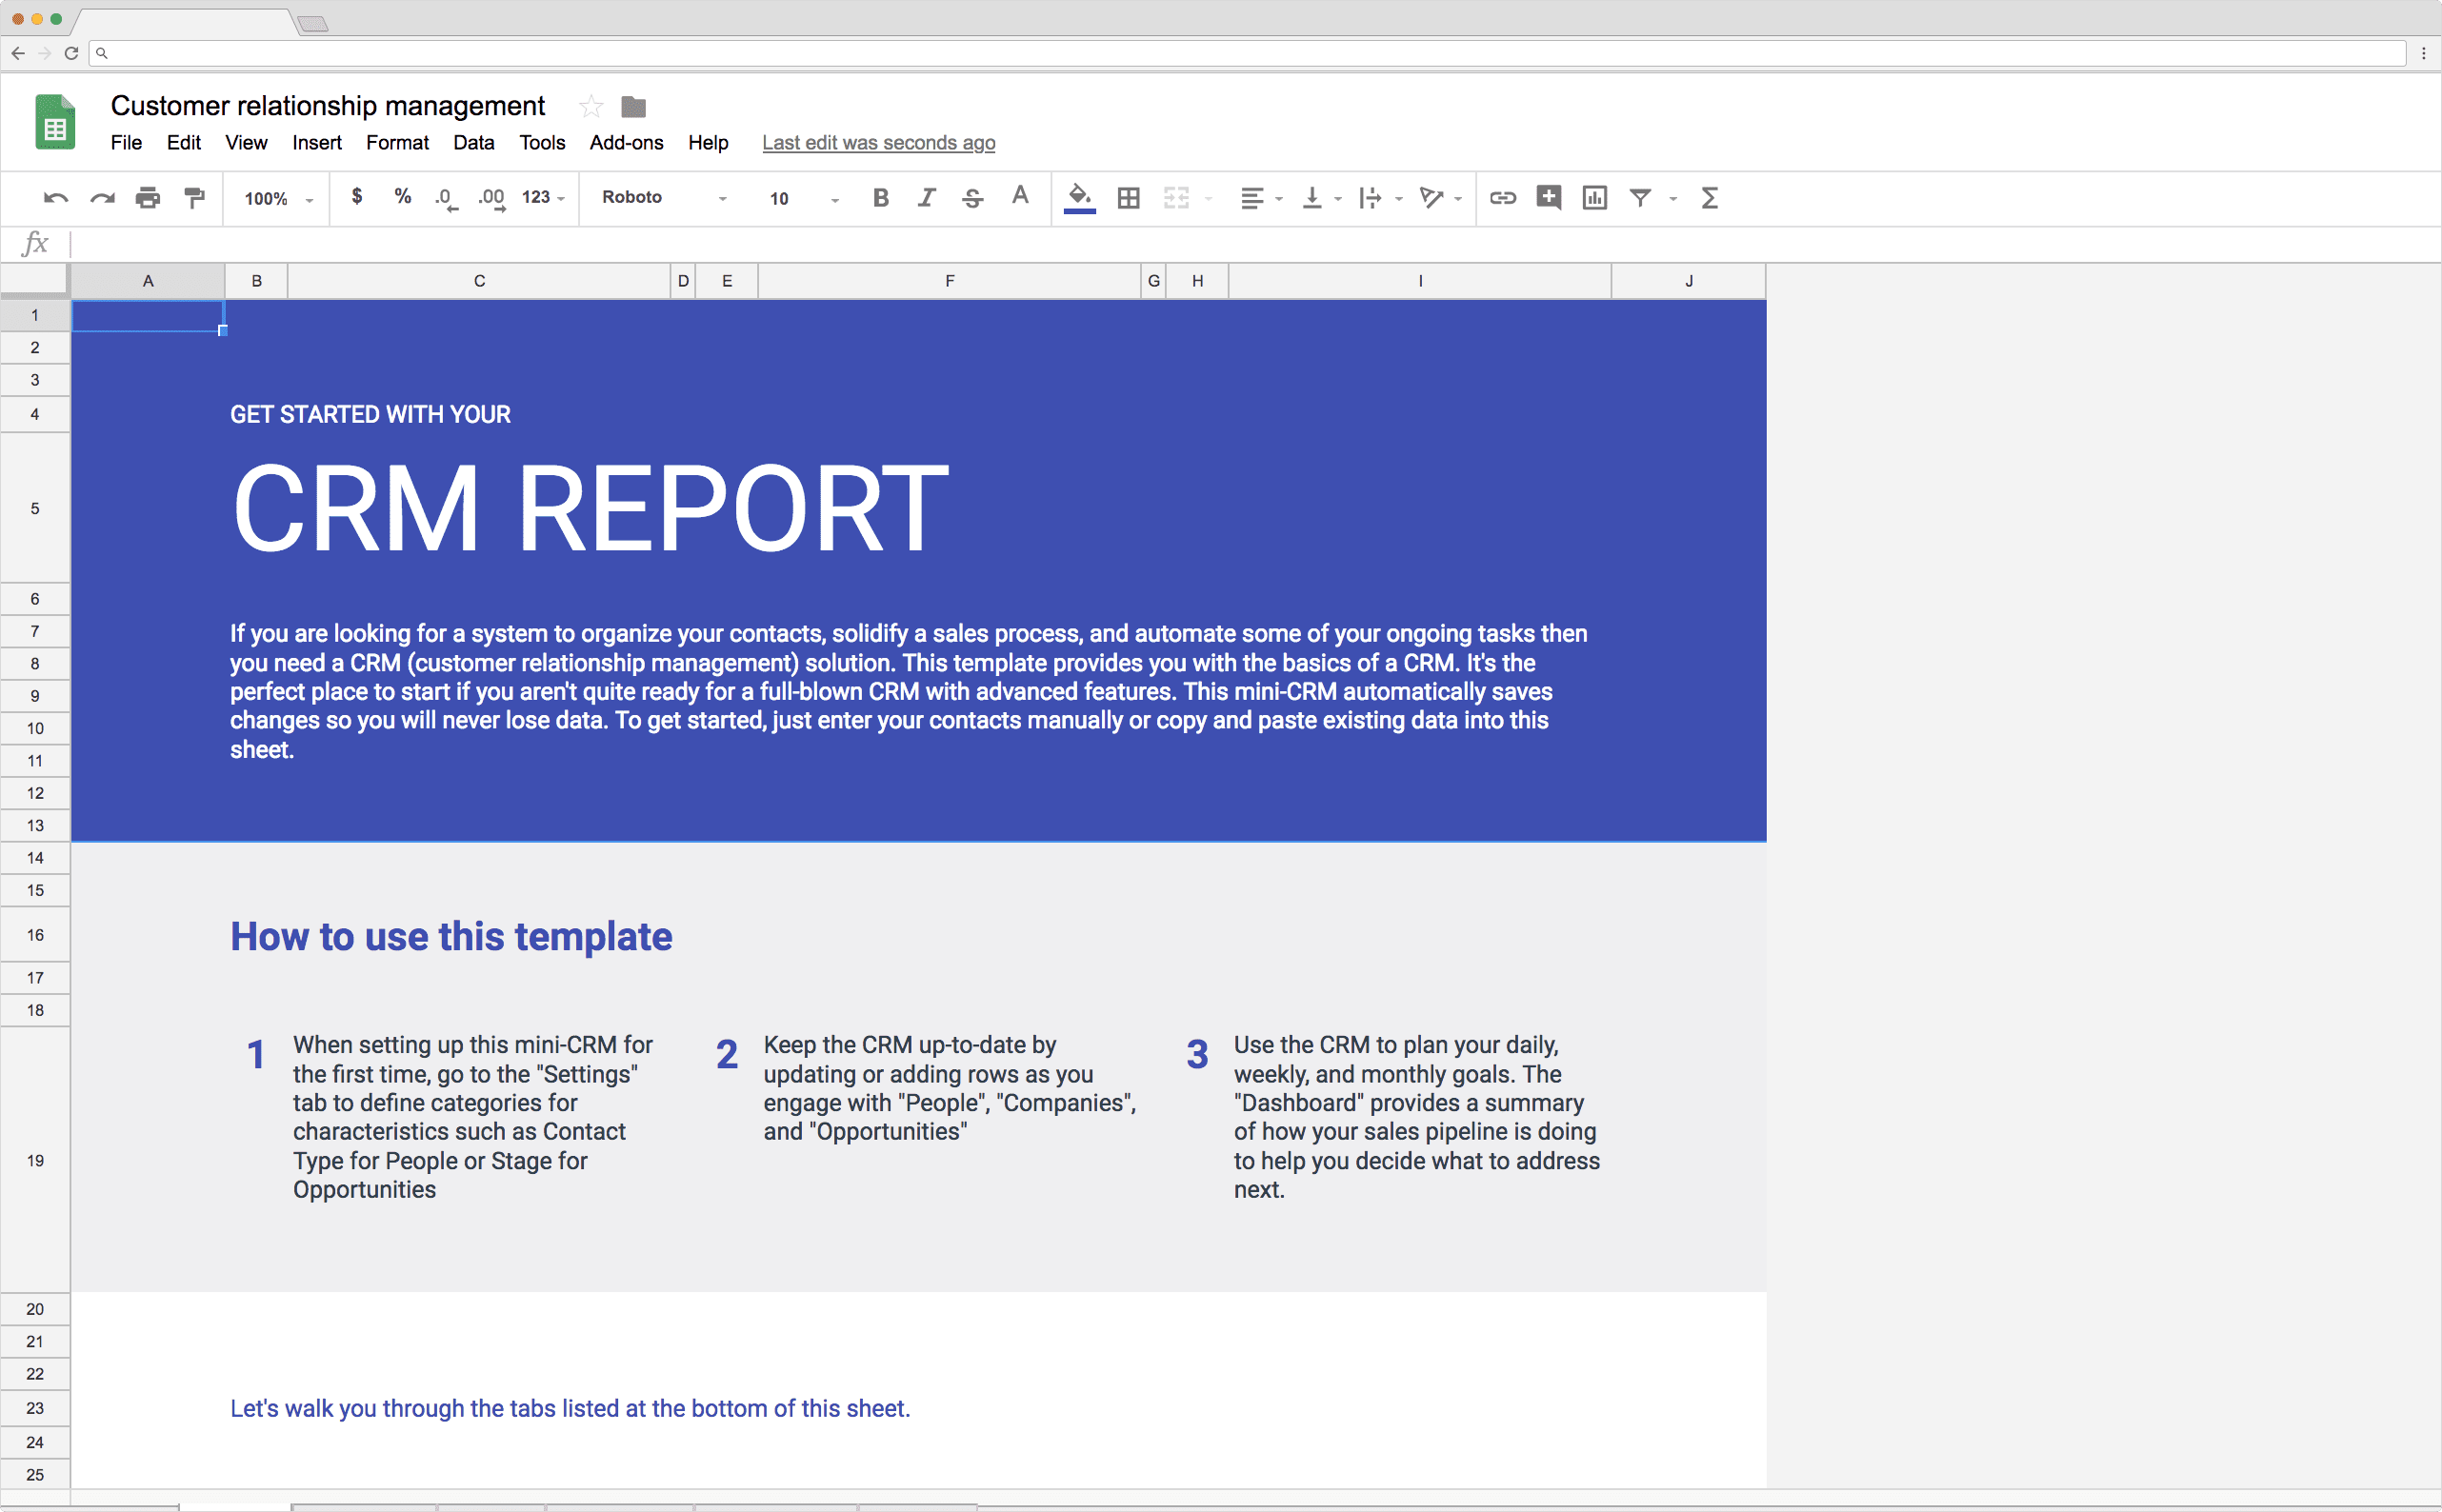 CRM Report Template in Google Sheets